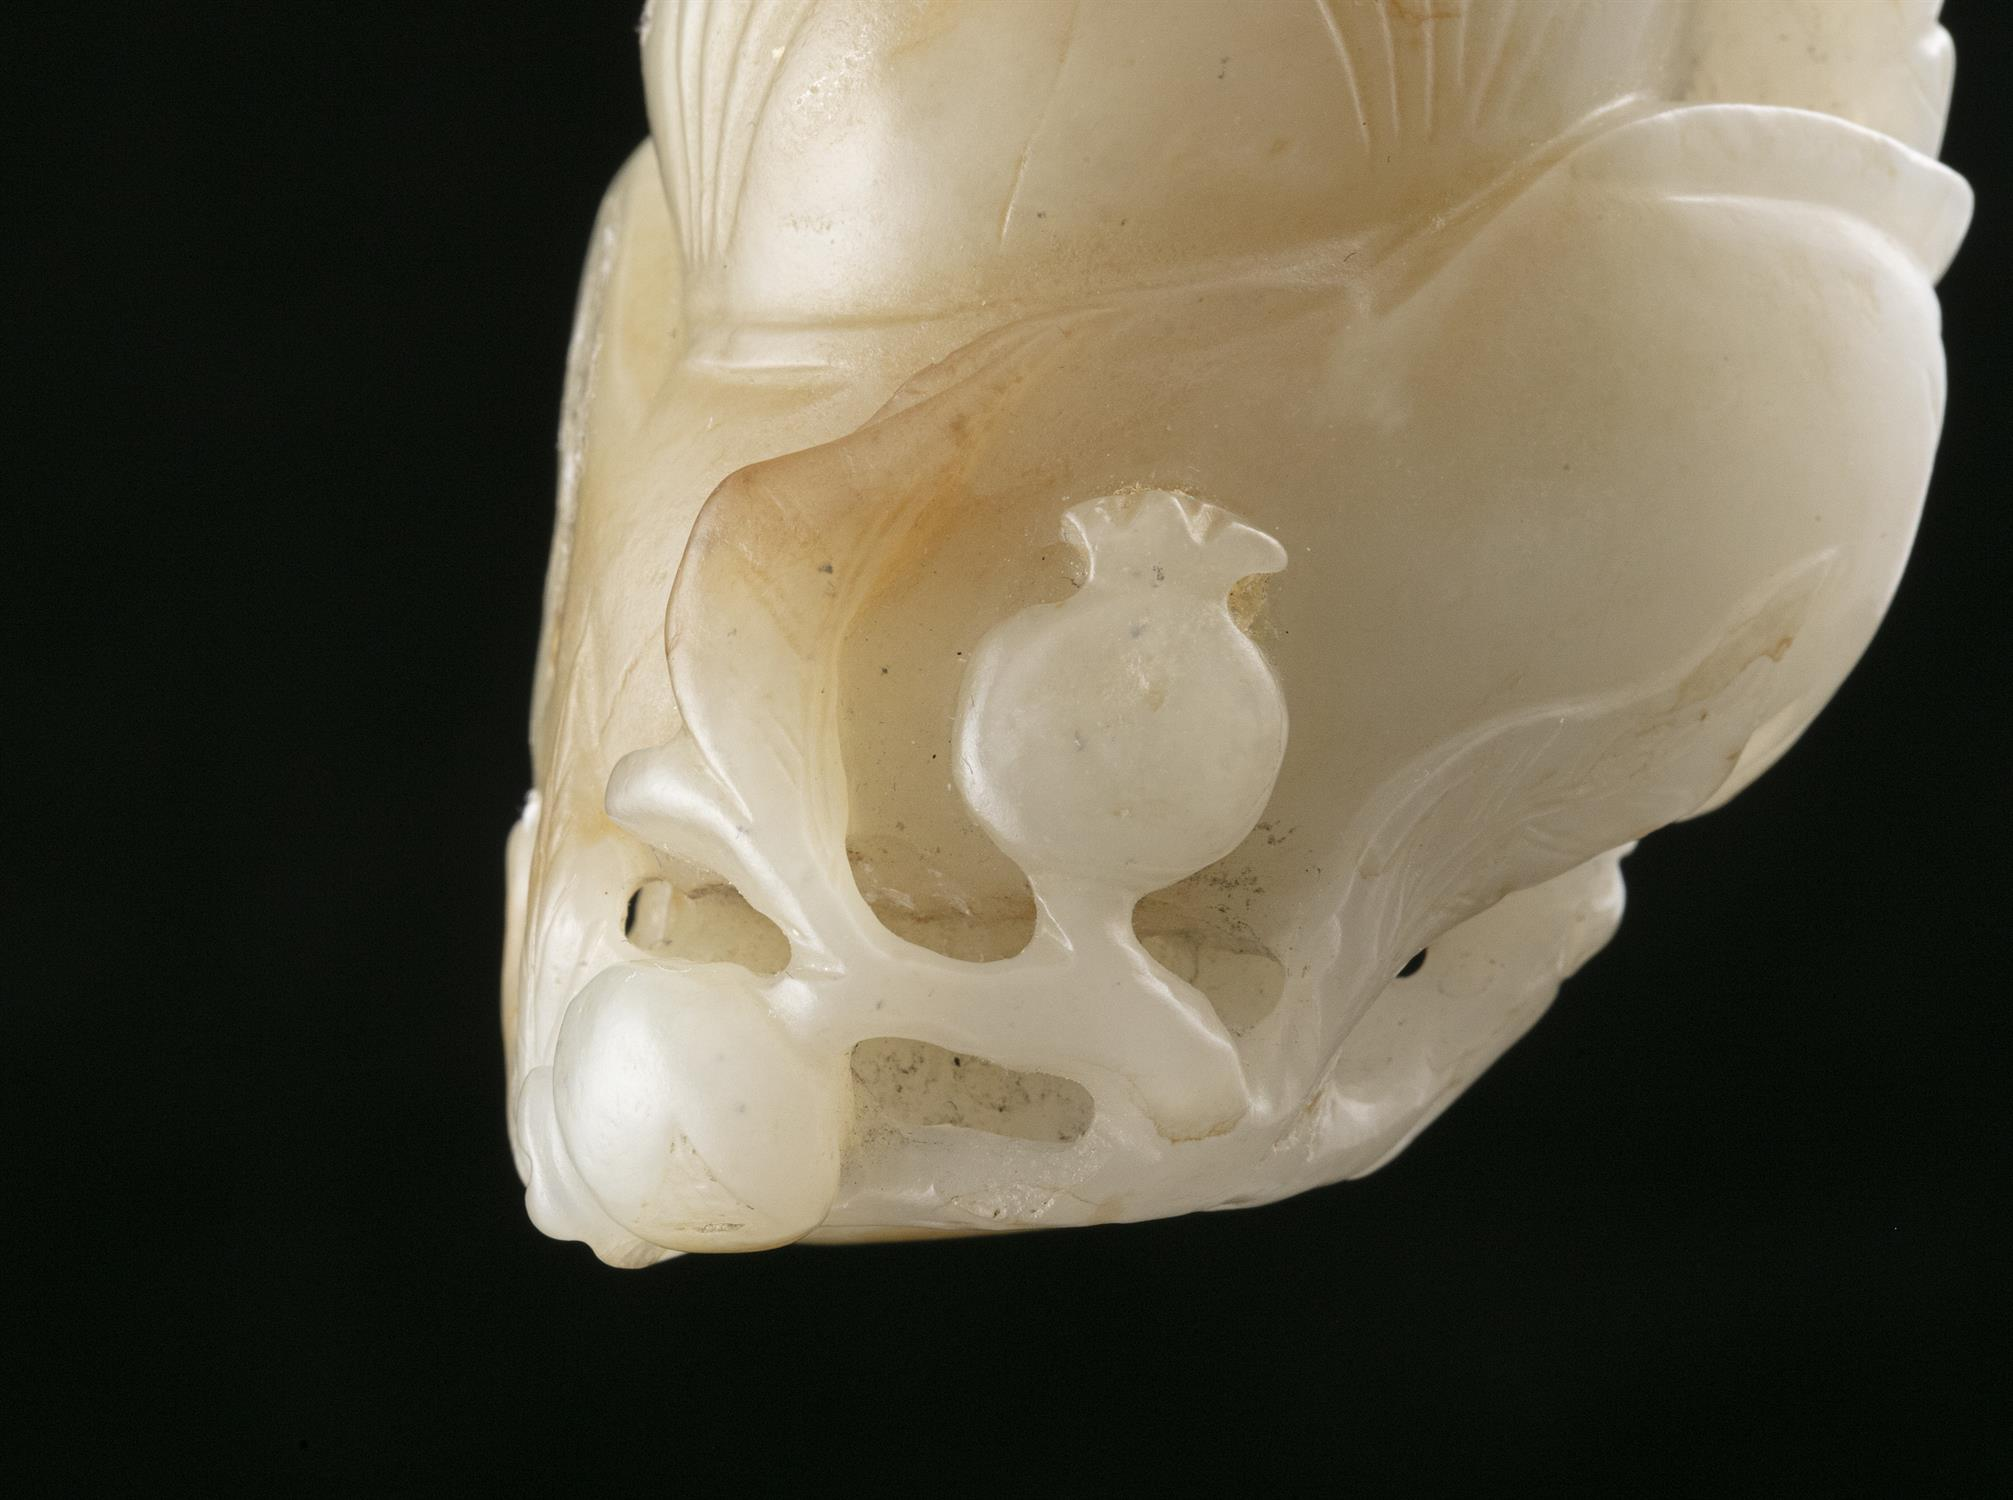 A WHITE AND RUSSETS JADE CARVING OF A HOHO / HEHE / ERXIAN / 和合二仙 China The boy is depicted grasping - Image 19 of 20